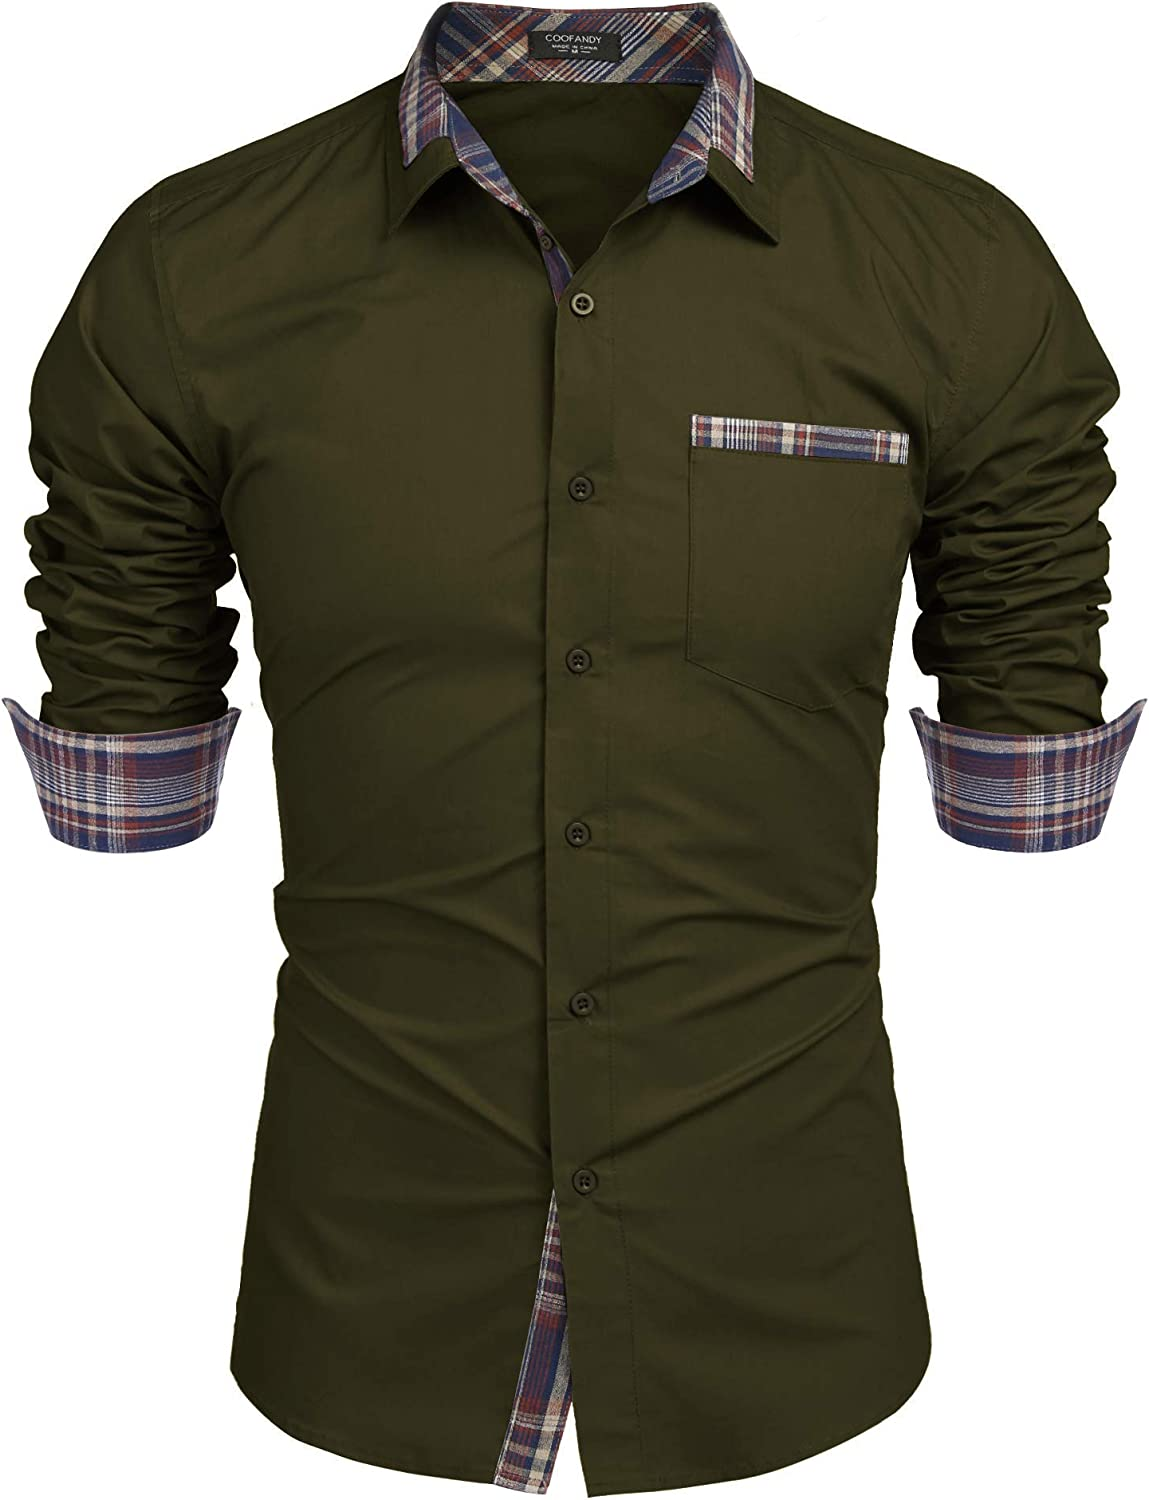 Stylish Mens Luxury Long Sleeve Casual And Formal Shirt Slim Fit Green Shirt